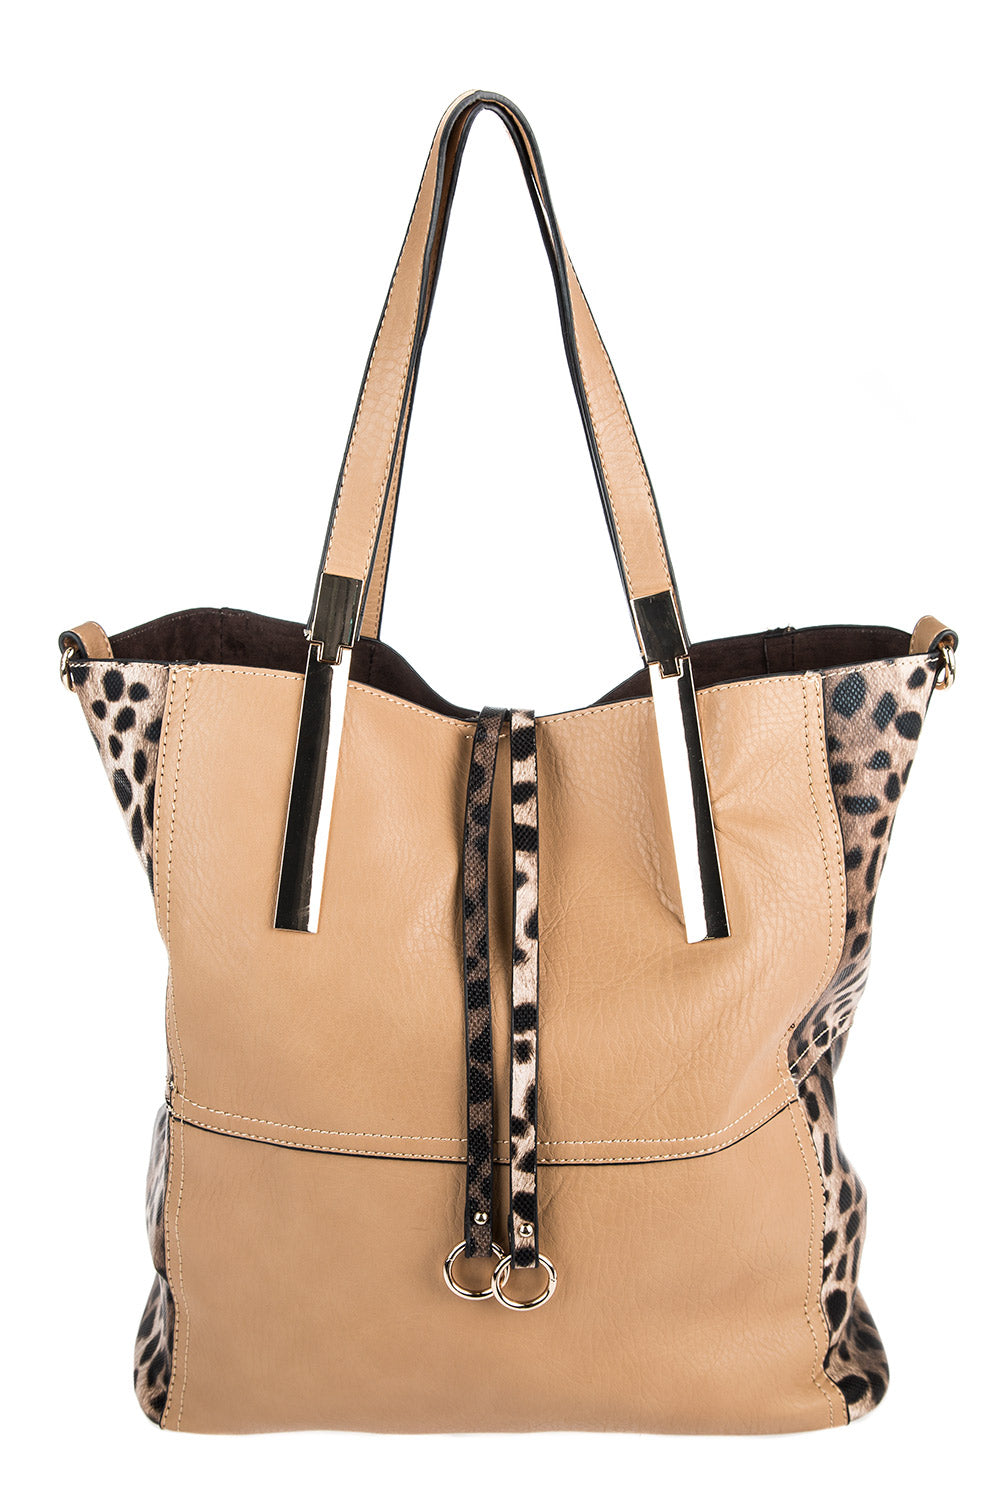 Type 3 Matreska Handbag